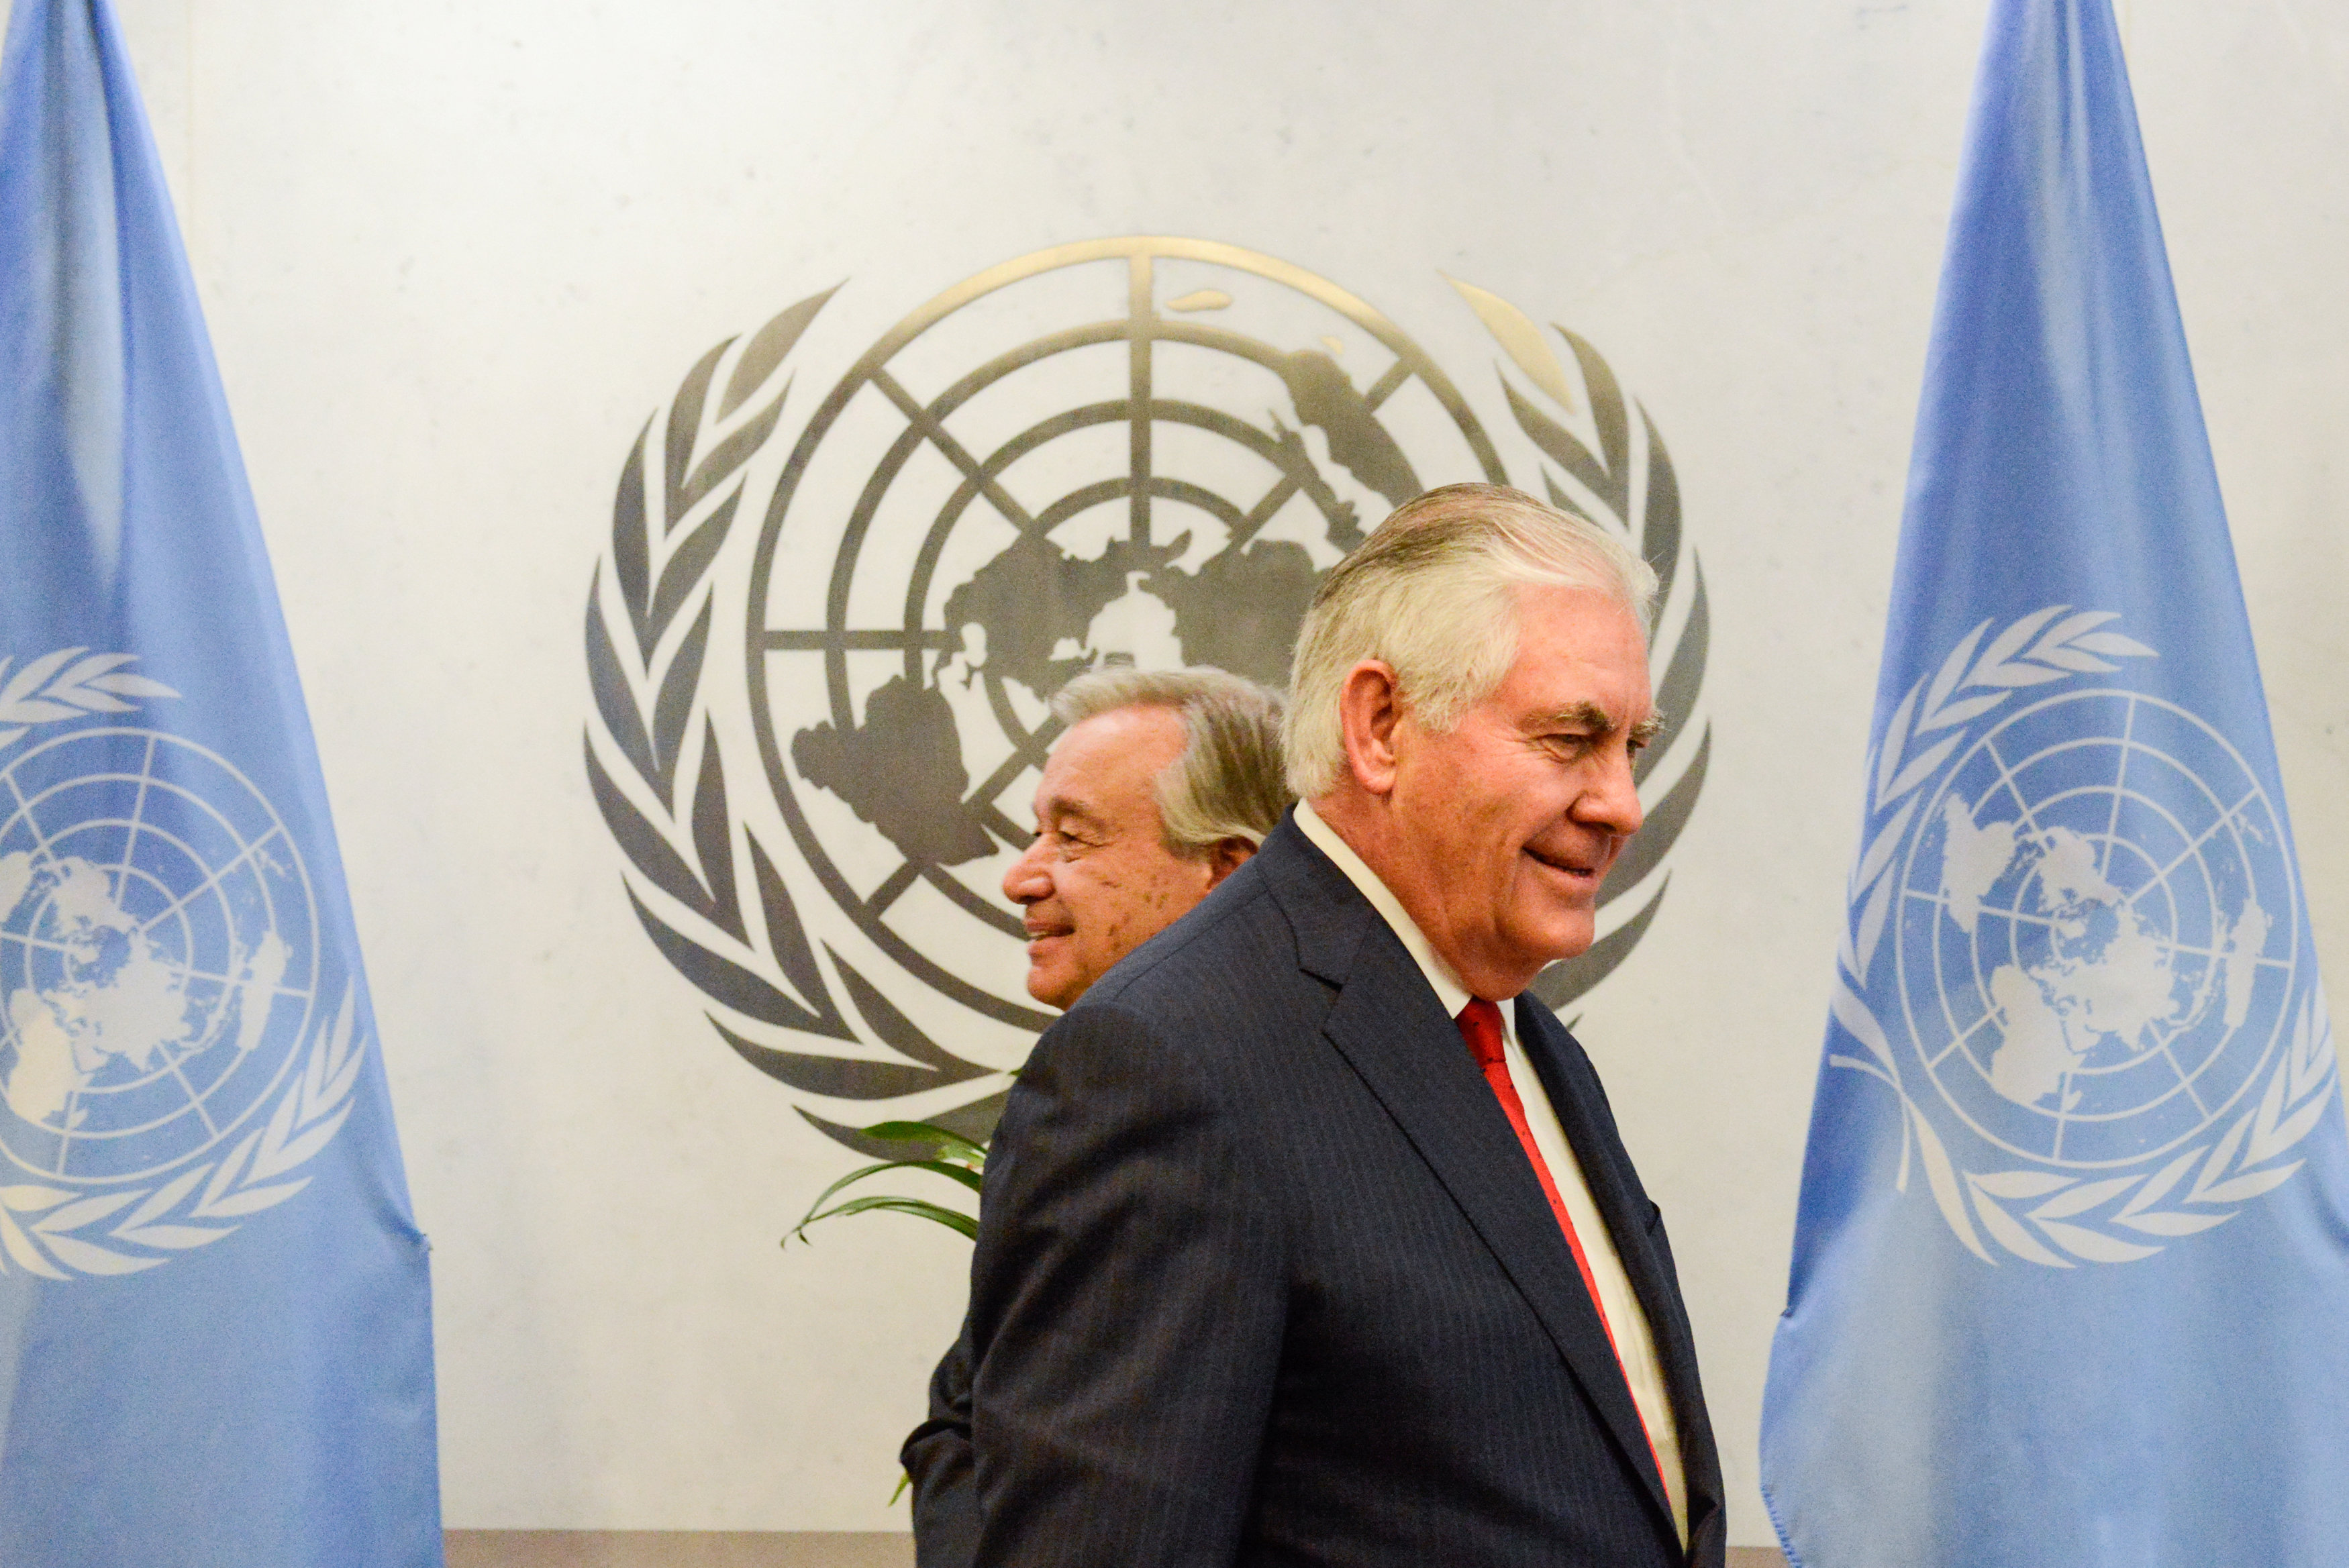 Tillerson Says He Will Stay as Top US Diplomat Through 2018